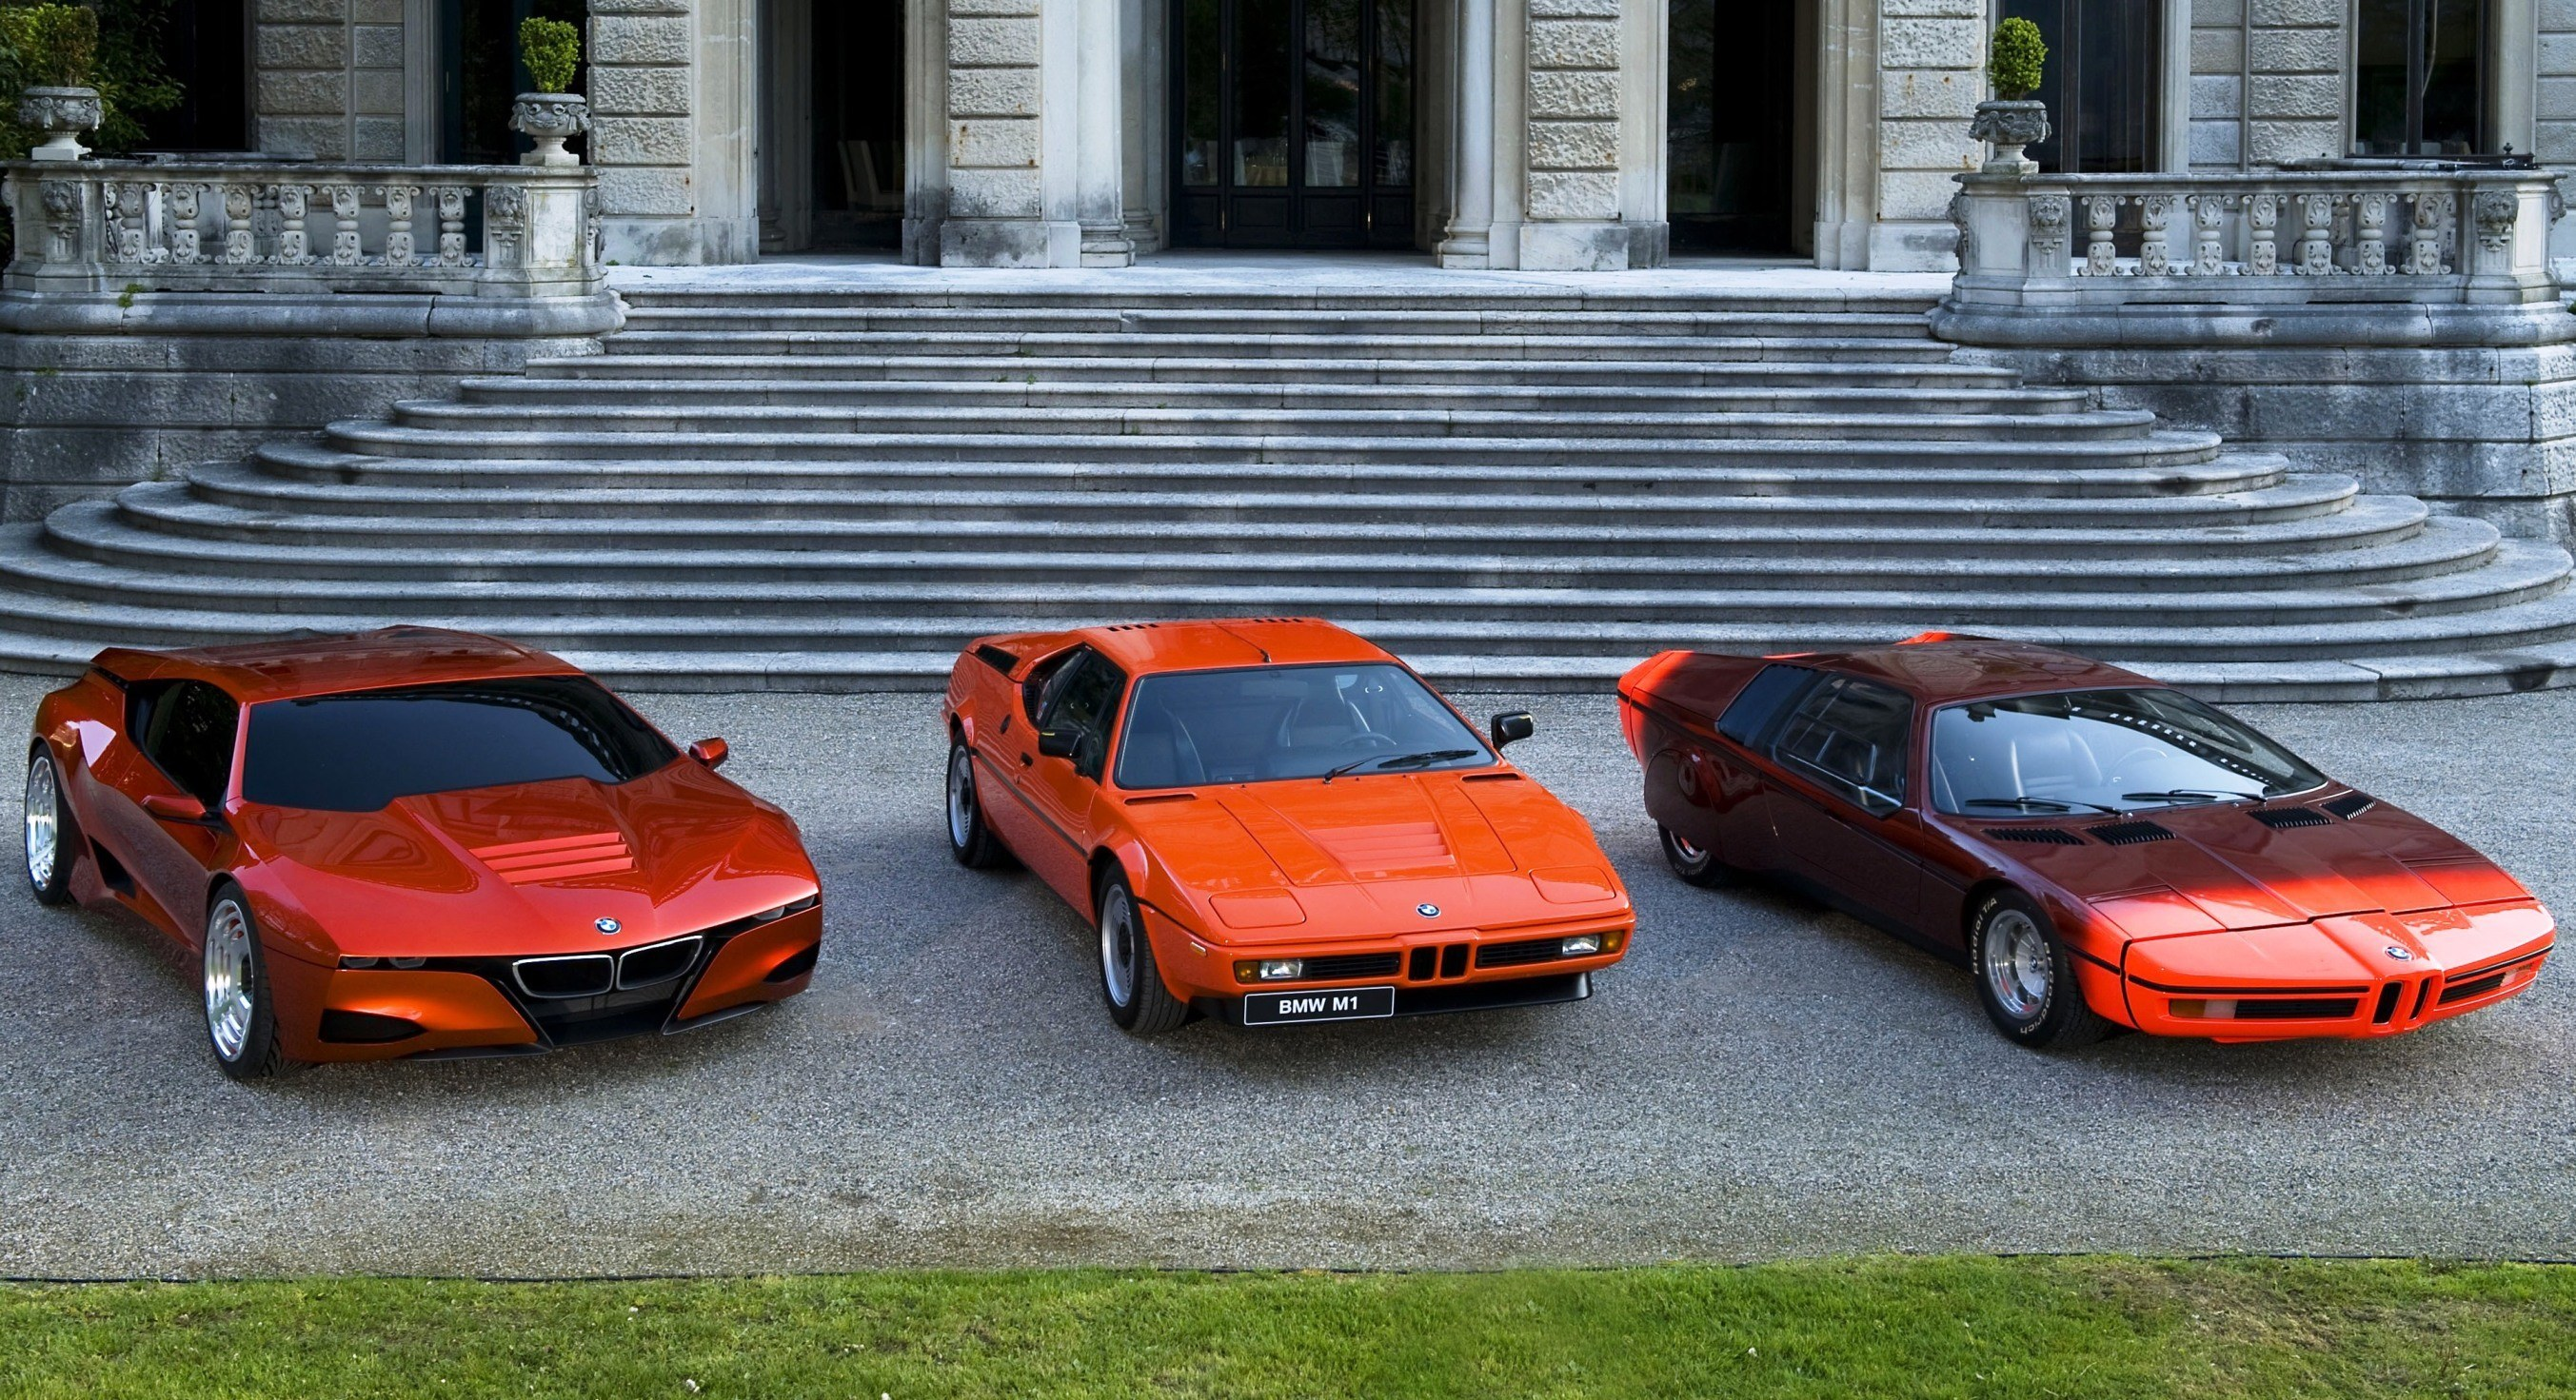 then-and-now-1980-bmw-m1-versus-2008-bmw-m1-hommage-7